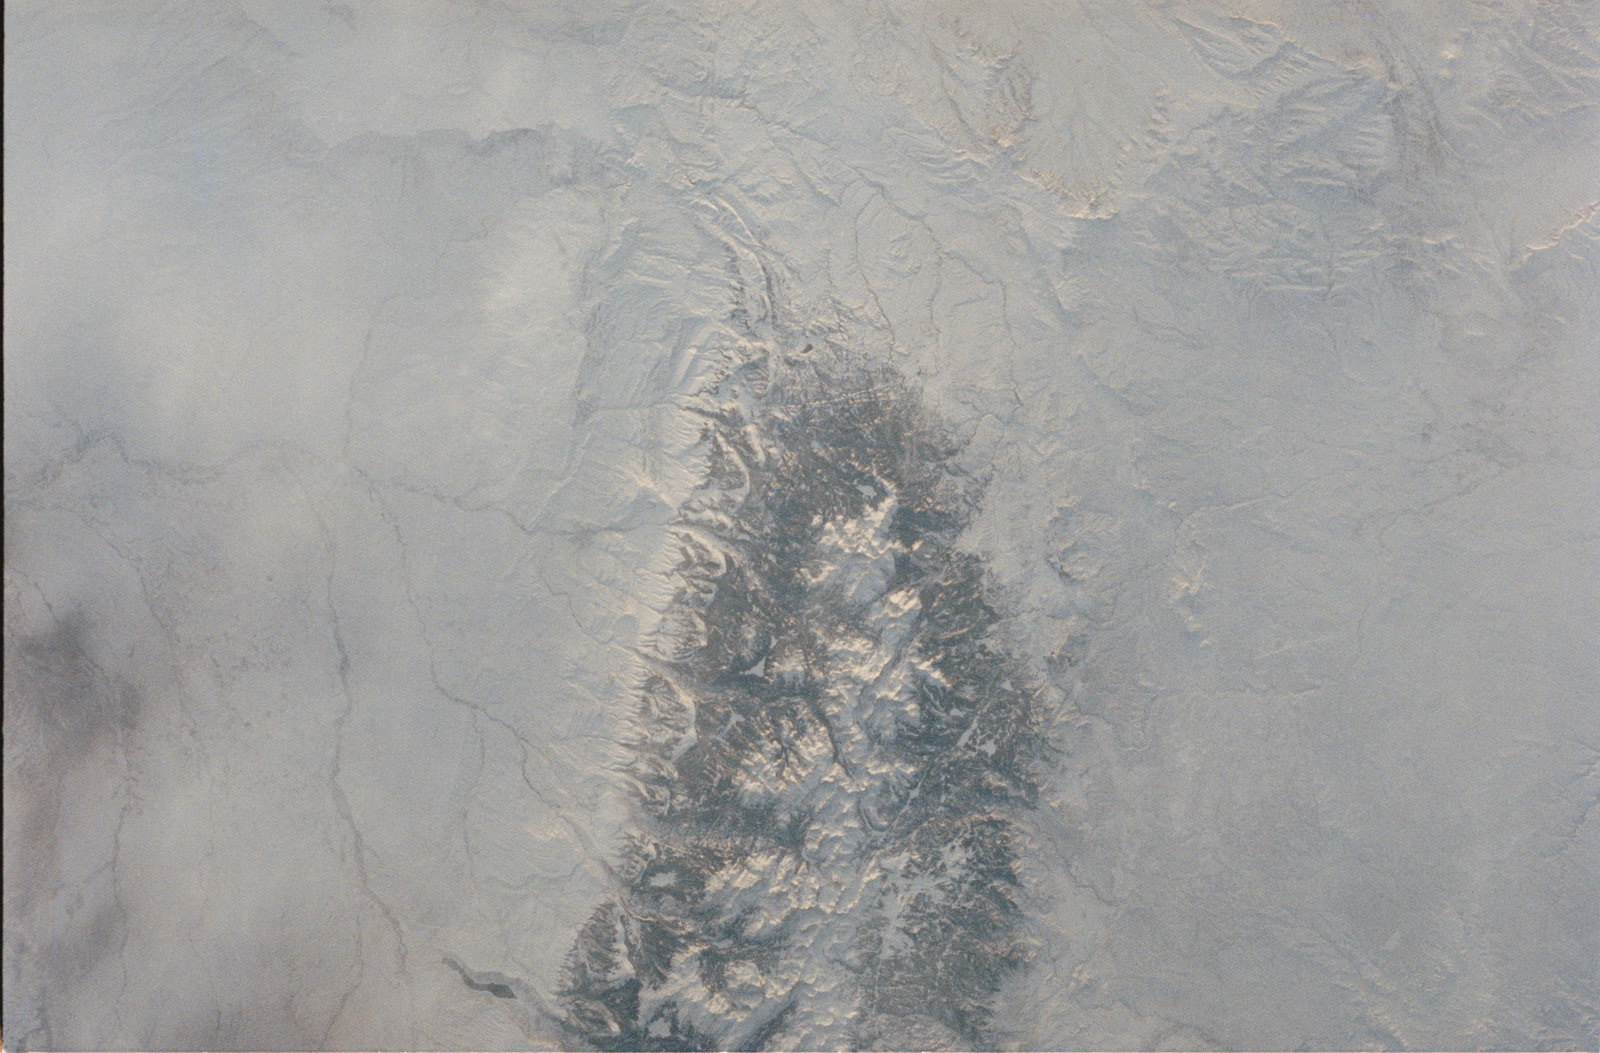 STS053-39-031 - STS-053 - Earth observations views of an unidentified snow covered landscape.